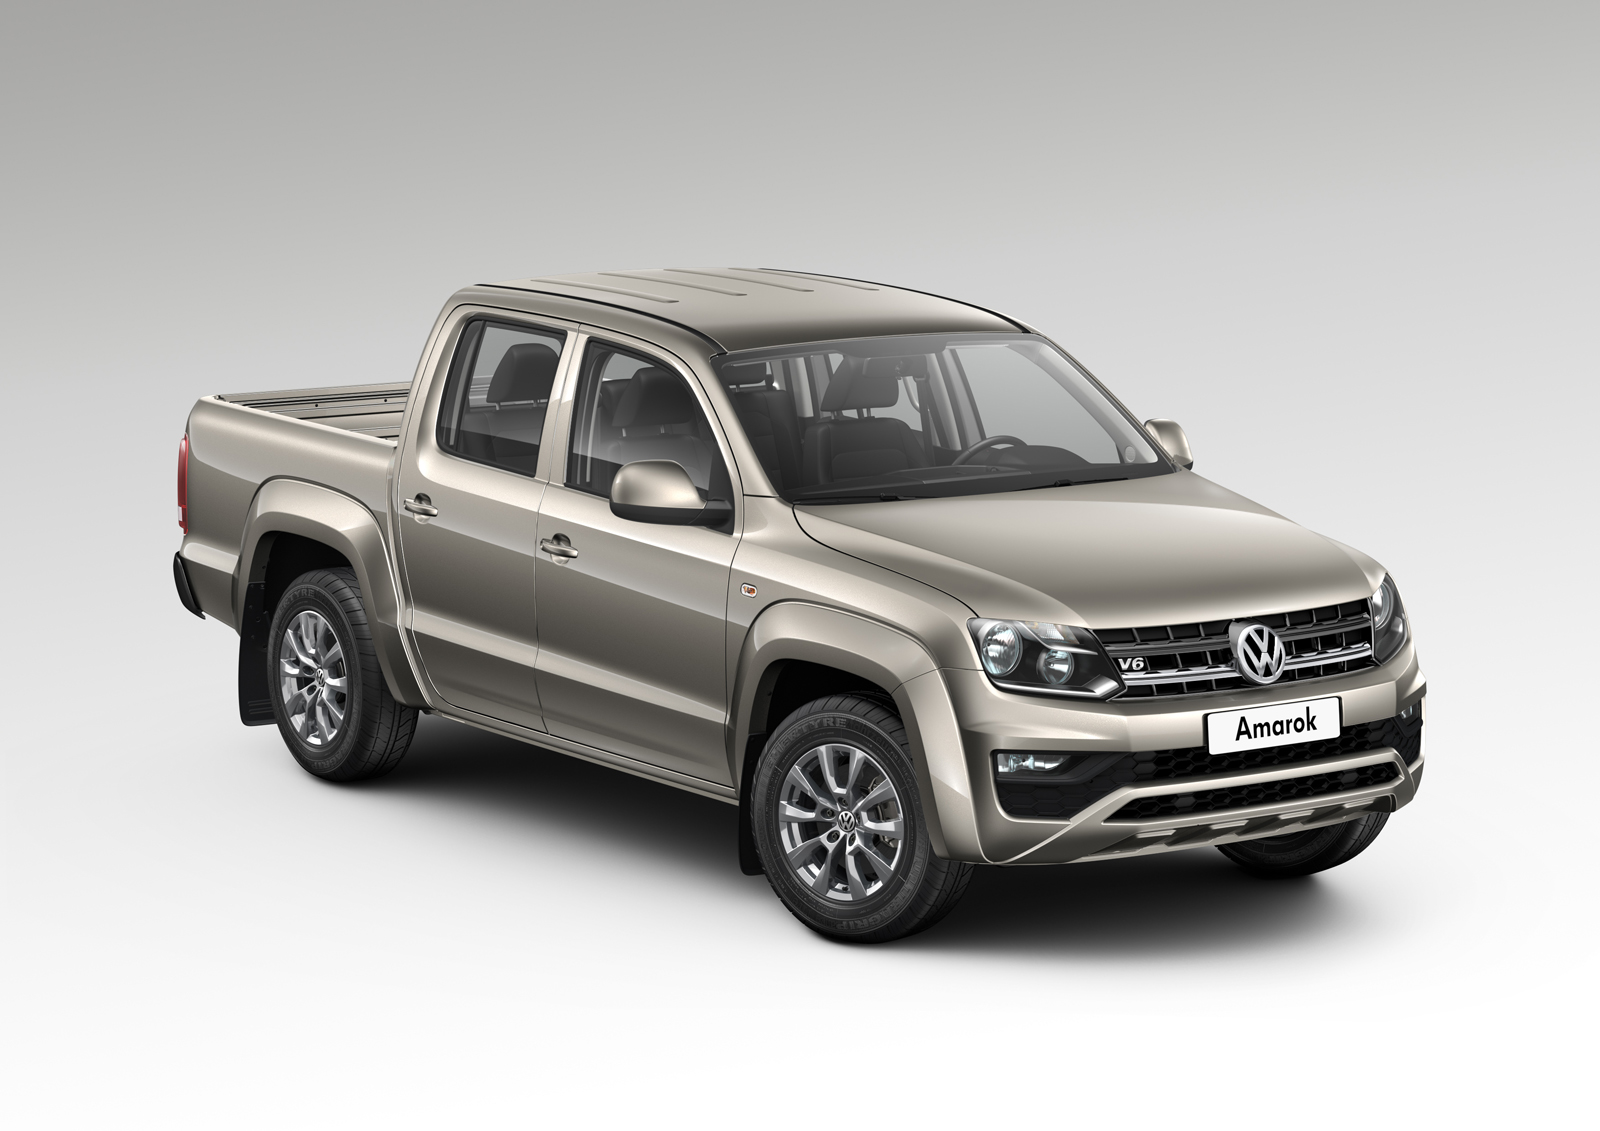 vw amarok may reach the united states carscoops. Black Bedroom Furniture Sets. Home Design Ideas